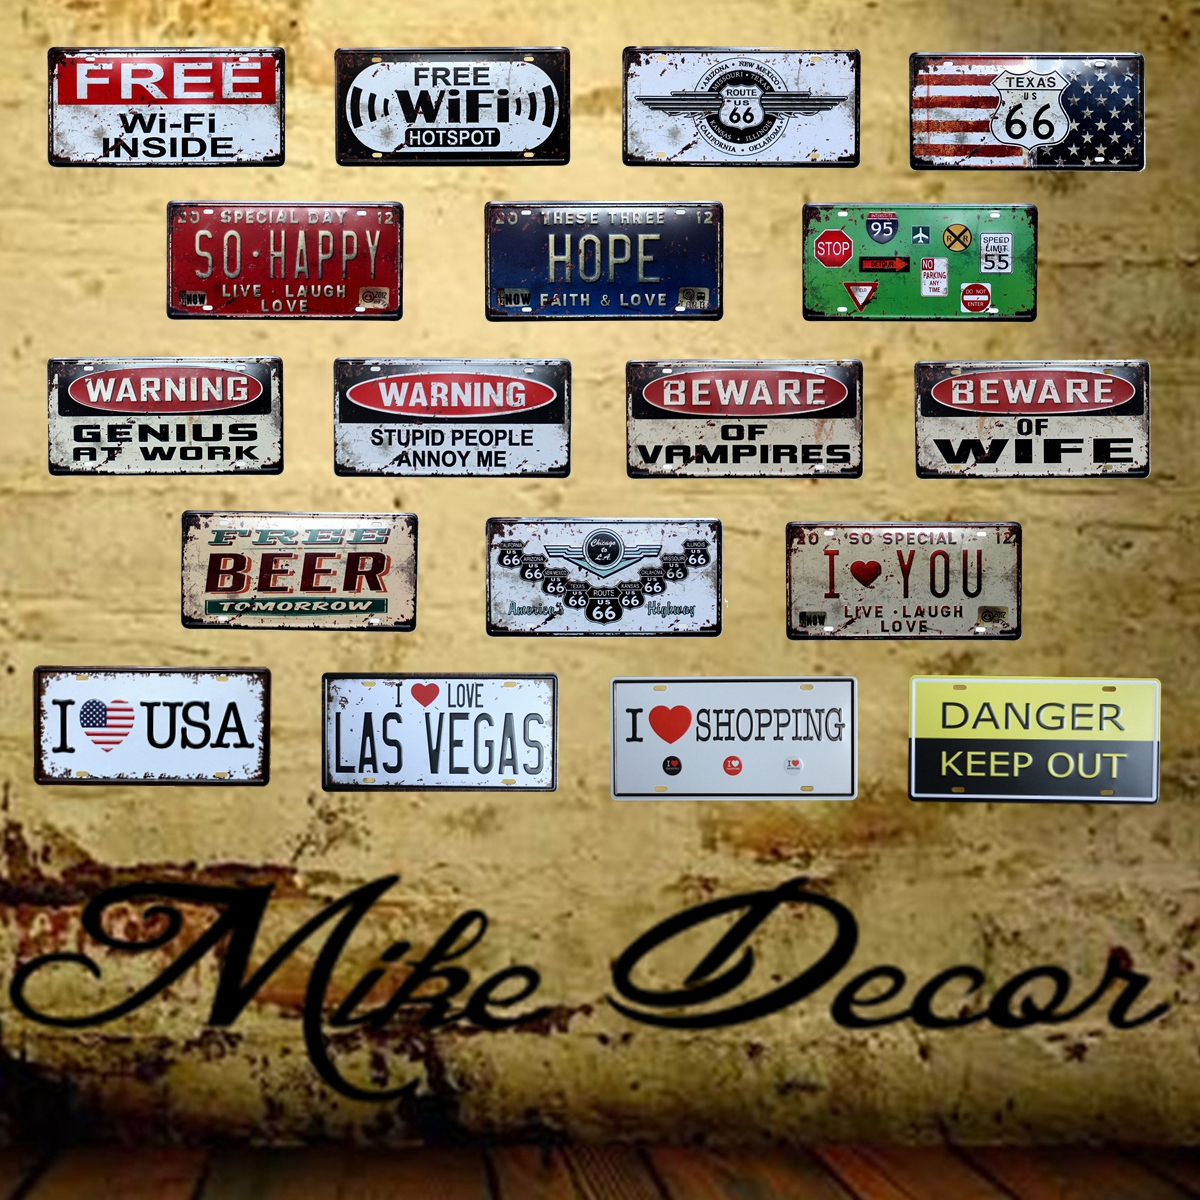 [Mike86] 2017 Նոր WiFI Route66 Metal Sign Antique Craft Bar Home Tin Wall Plaque Decoration 30 * 15 CM FG-113